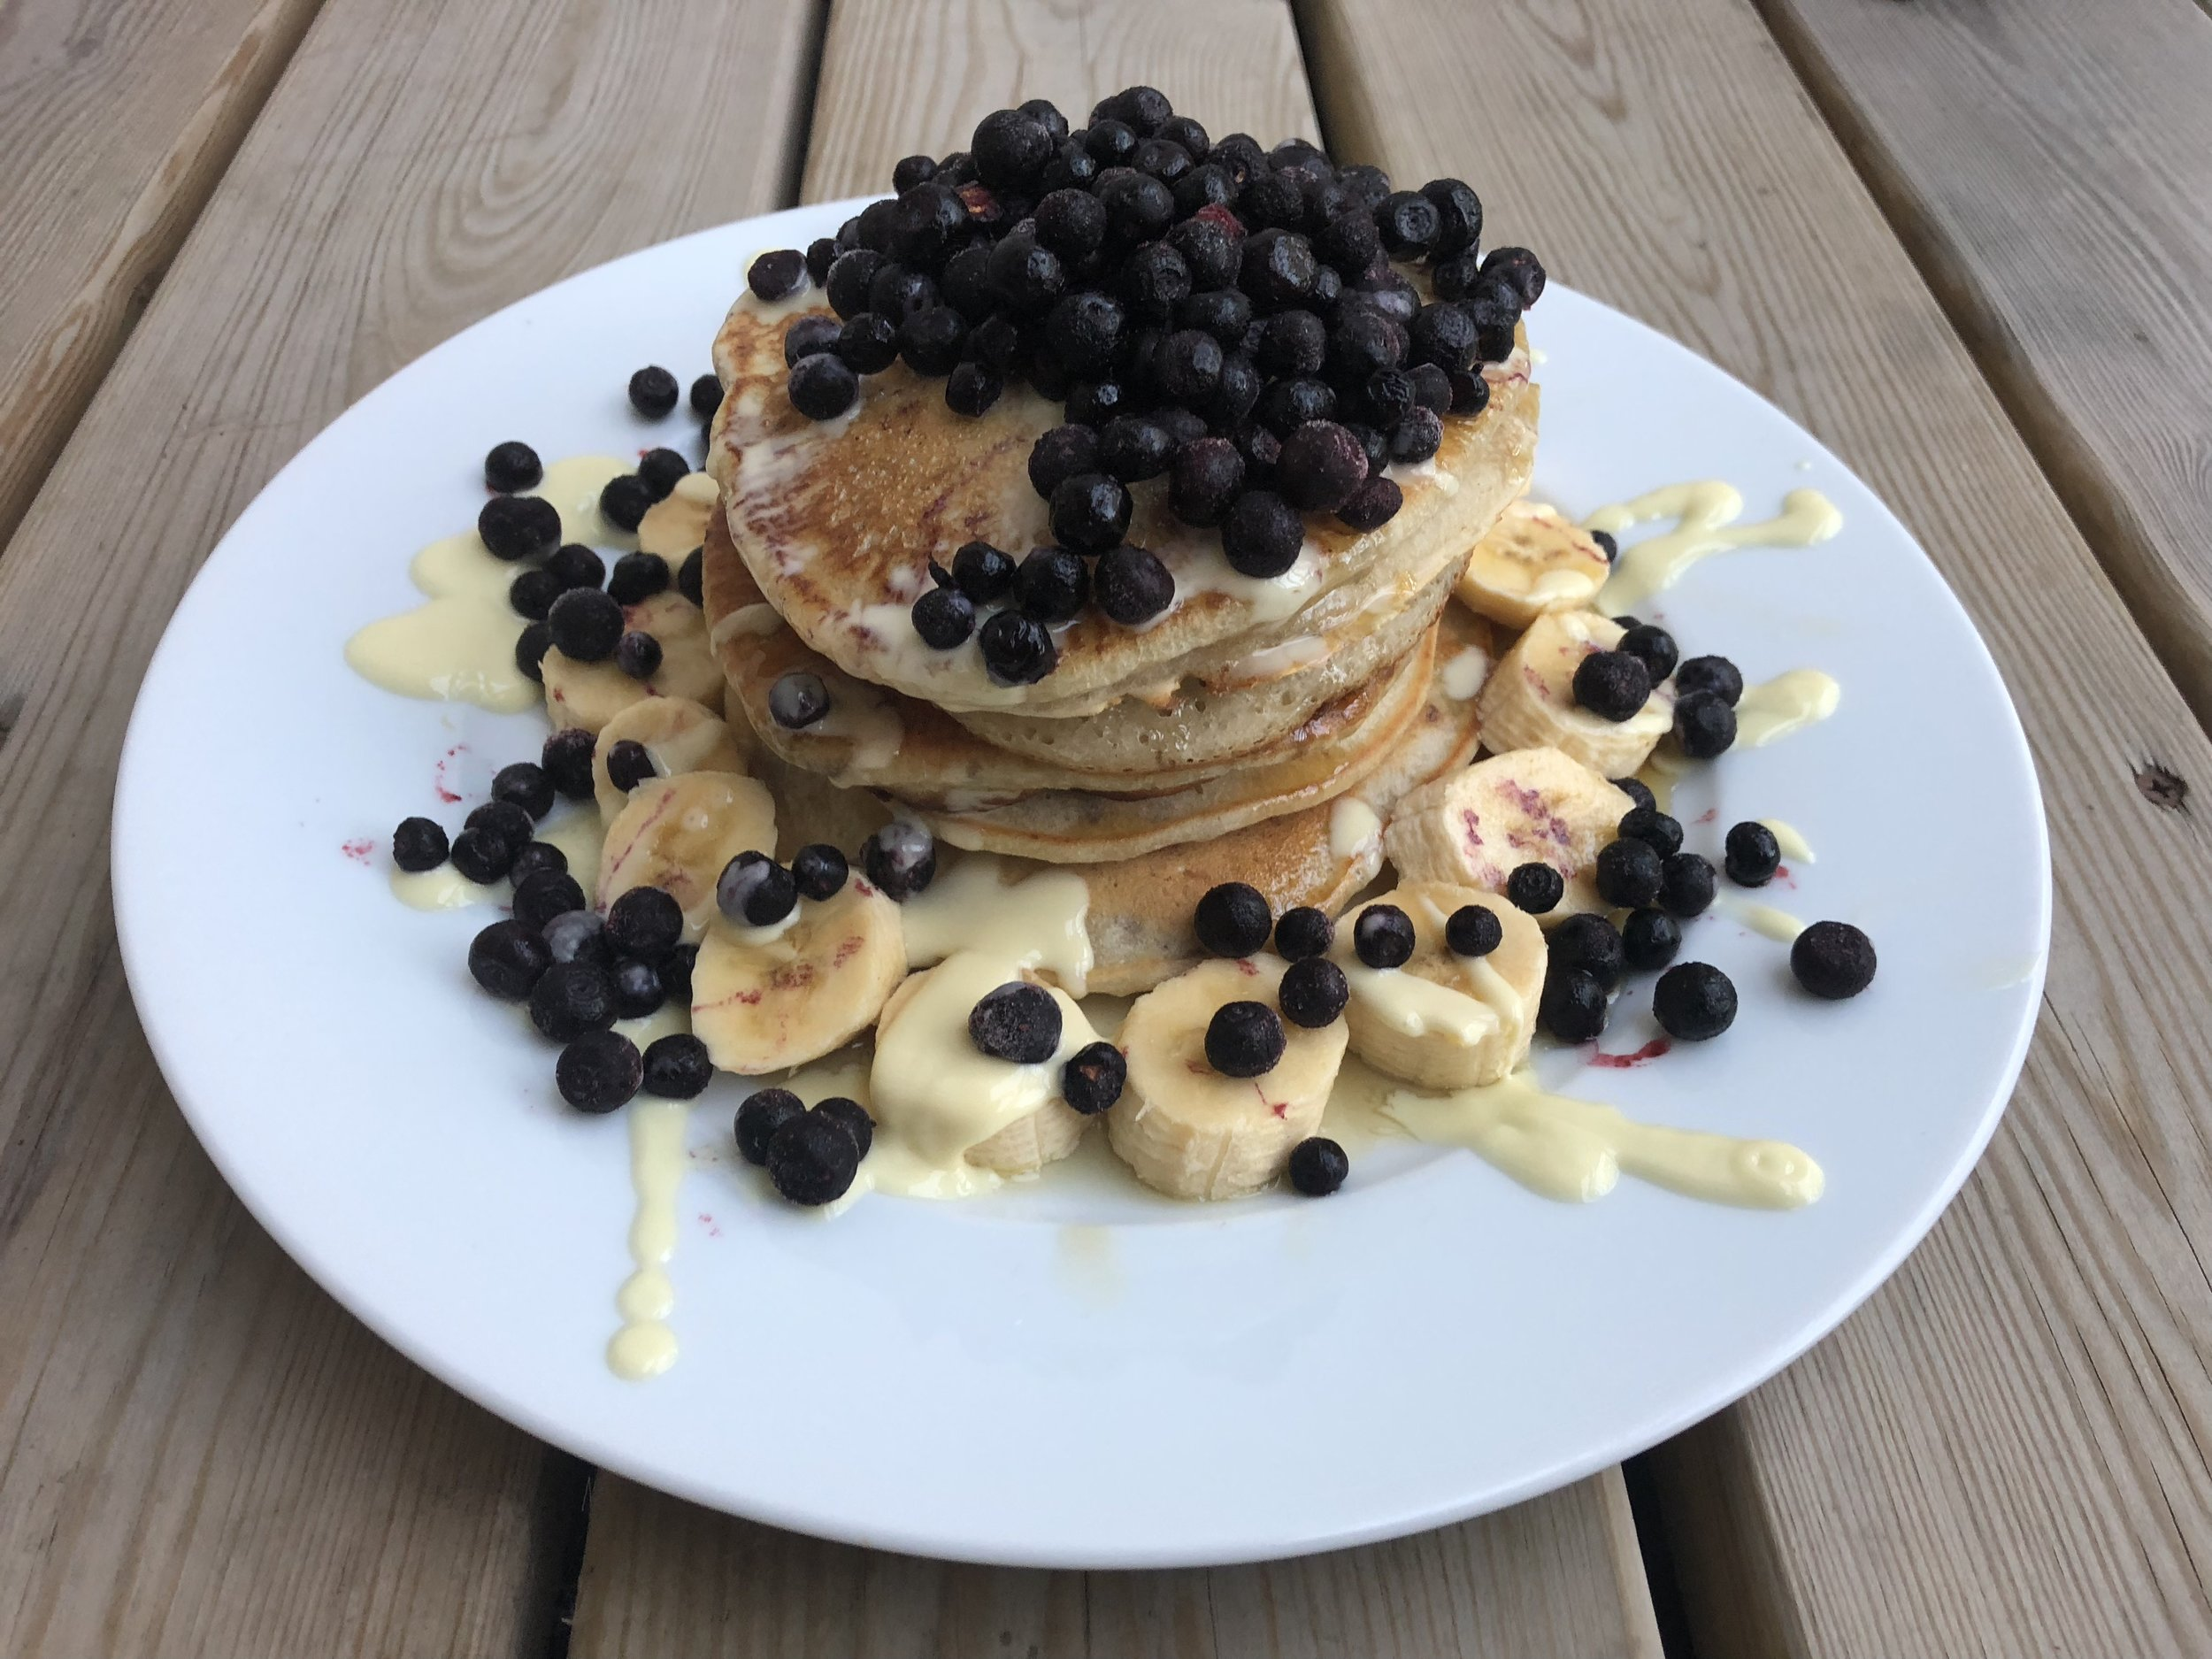 Light, fluffy and delicious pancakes that are 100% vegan! These are flavoured with cinnamon and cardamom and topped with syrup and vanilla sauce.